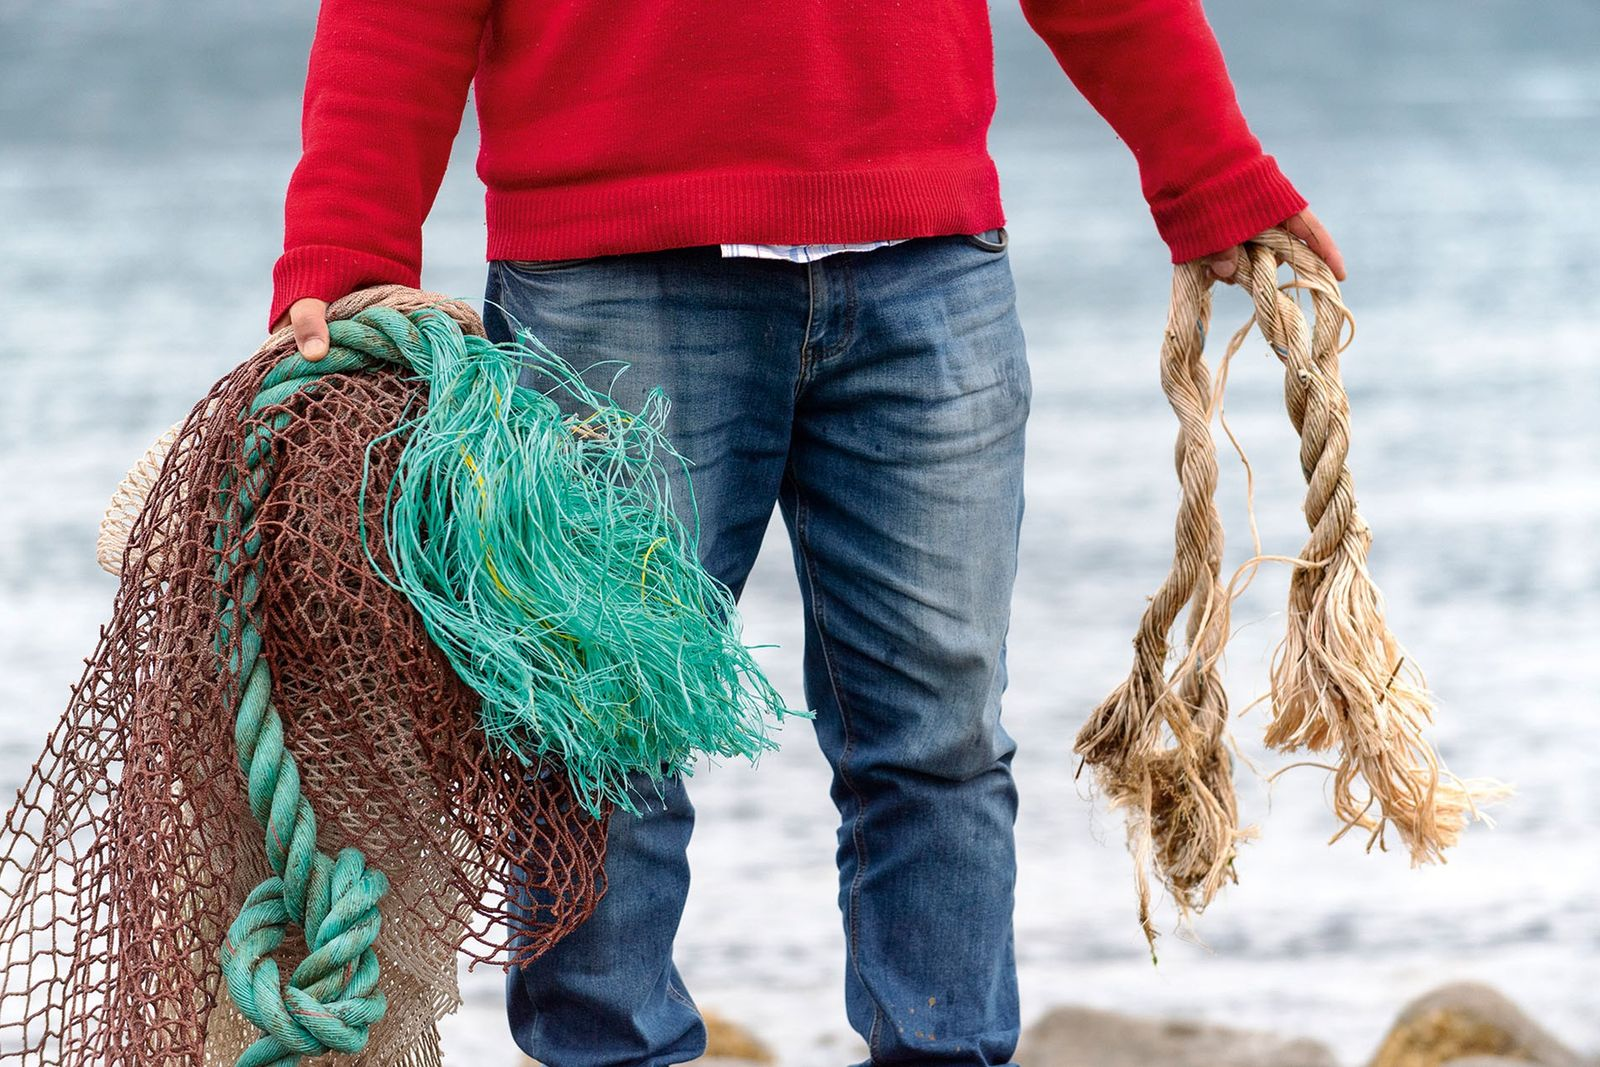 Man collecting netting from beach